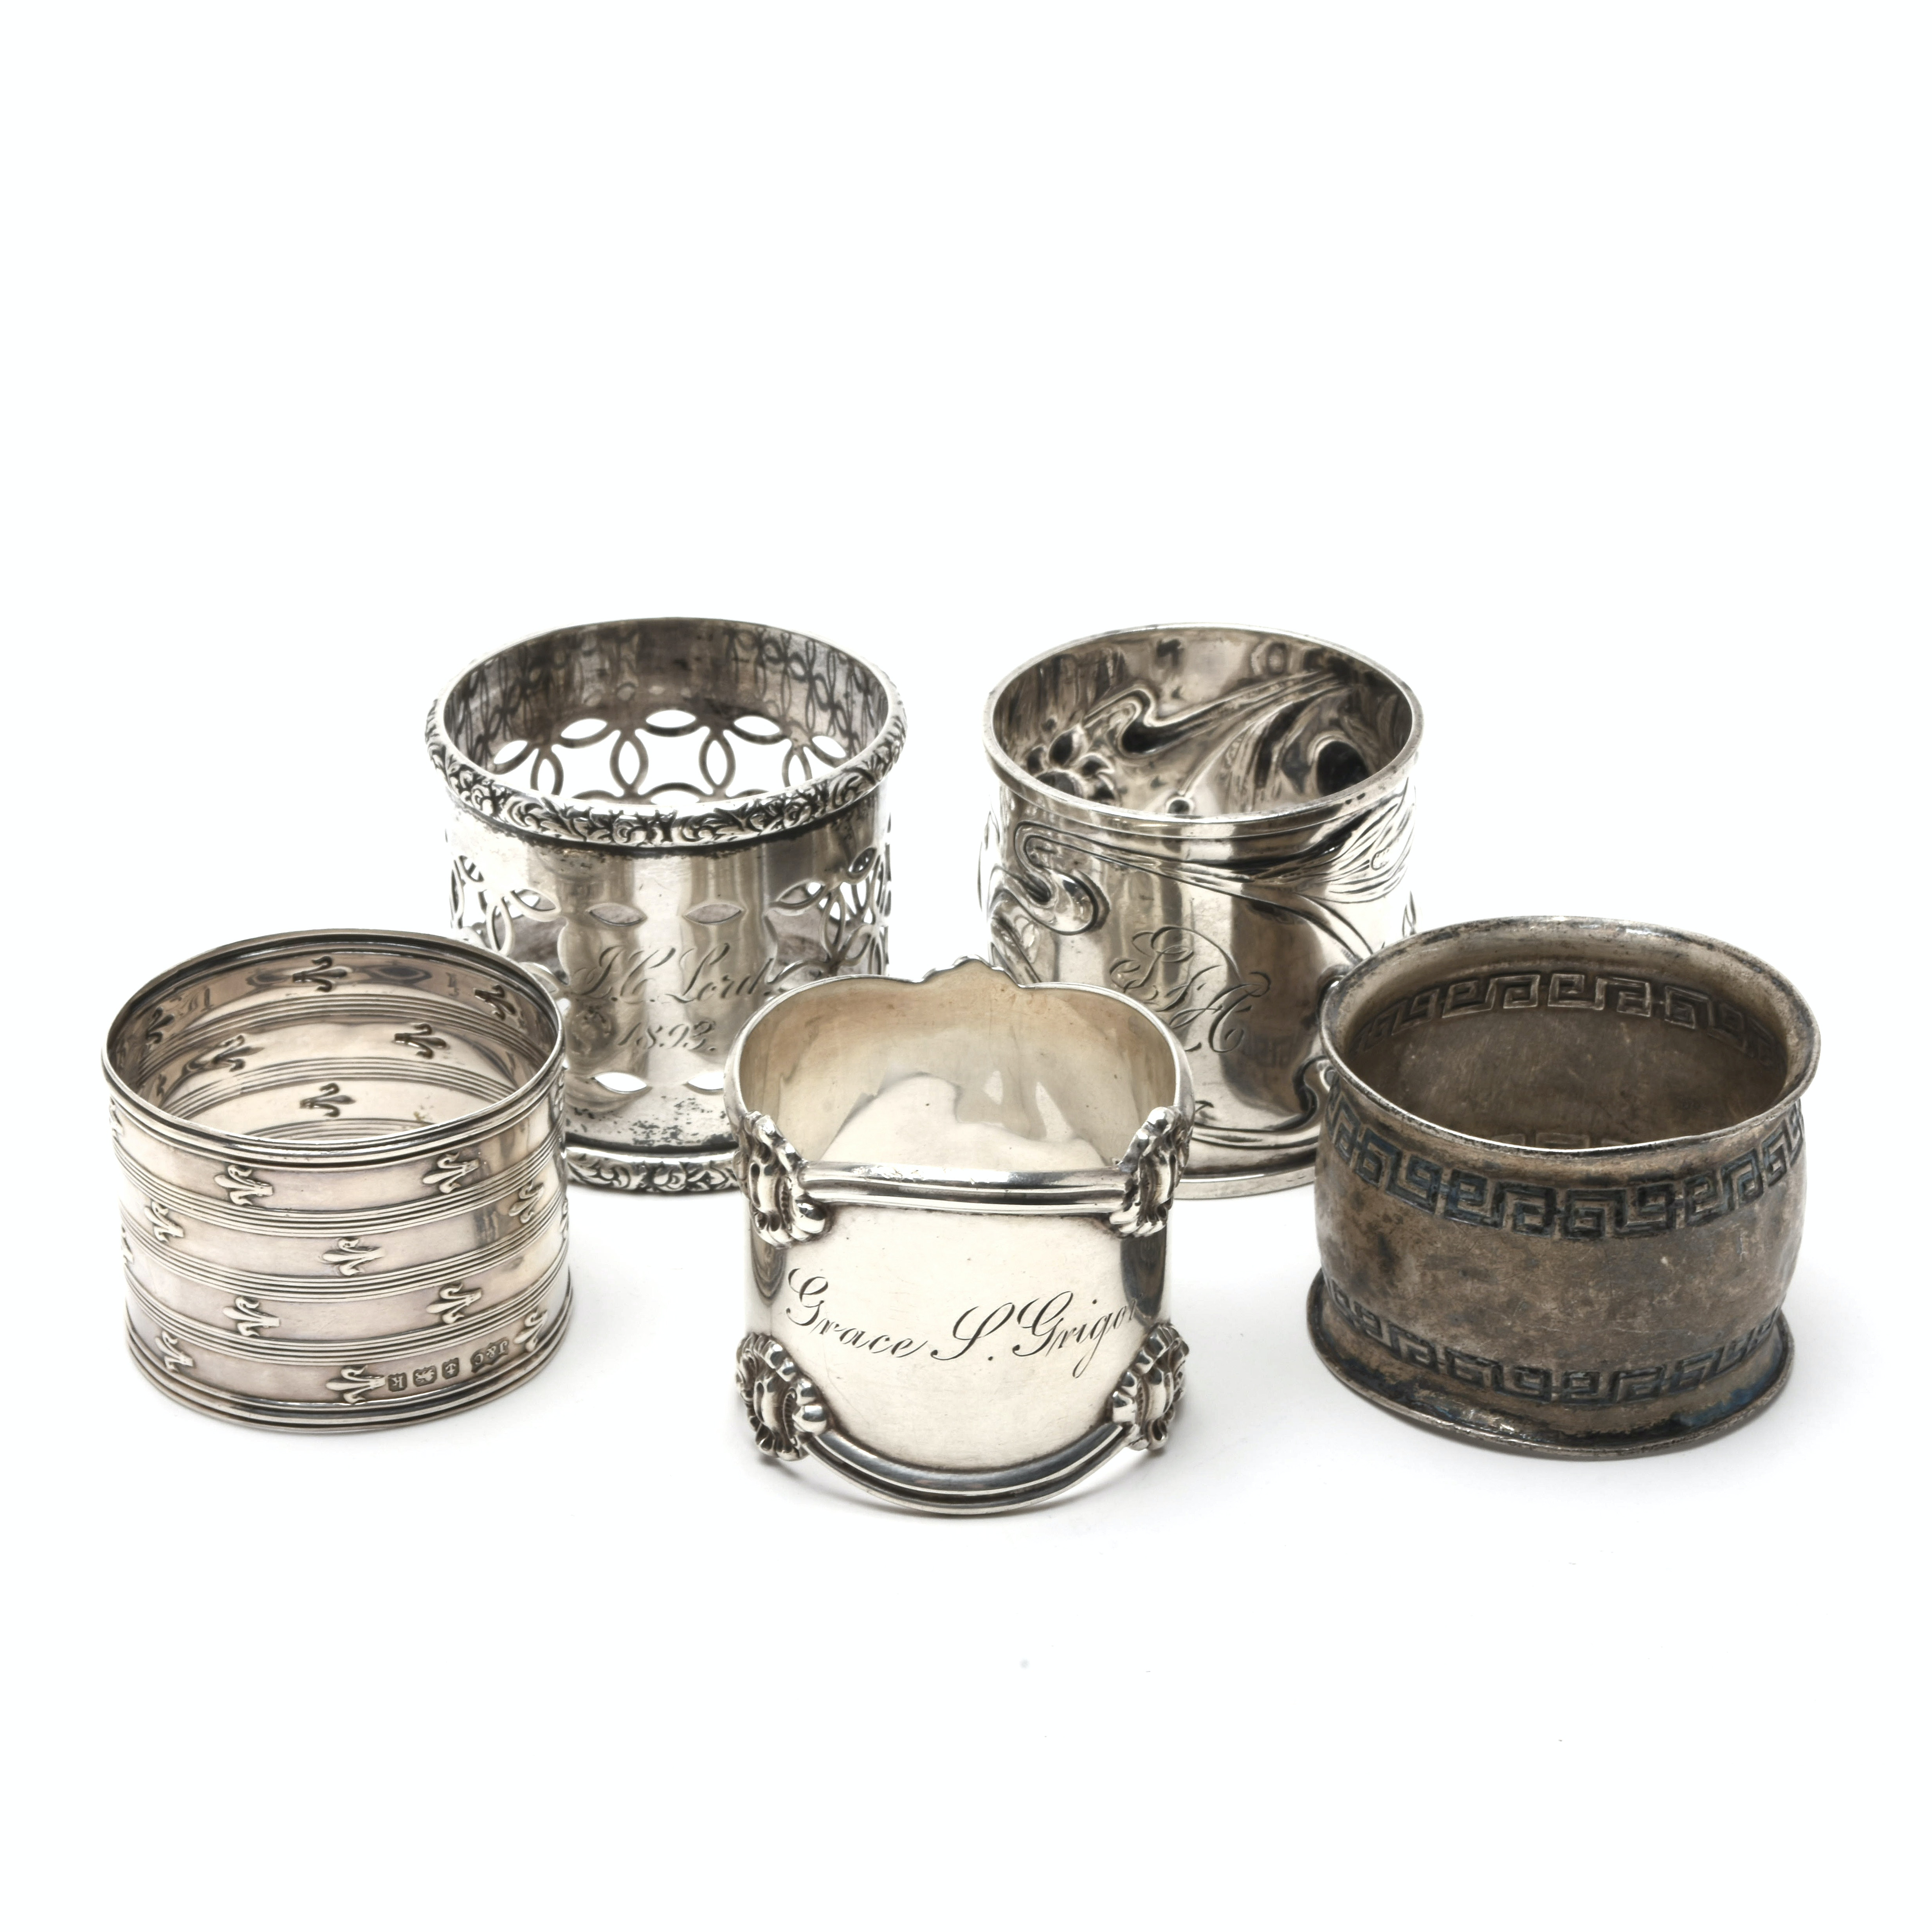 Five Antique Sterling Silver Napkin Rings from Assorted Makers